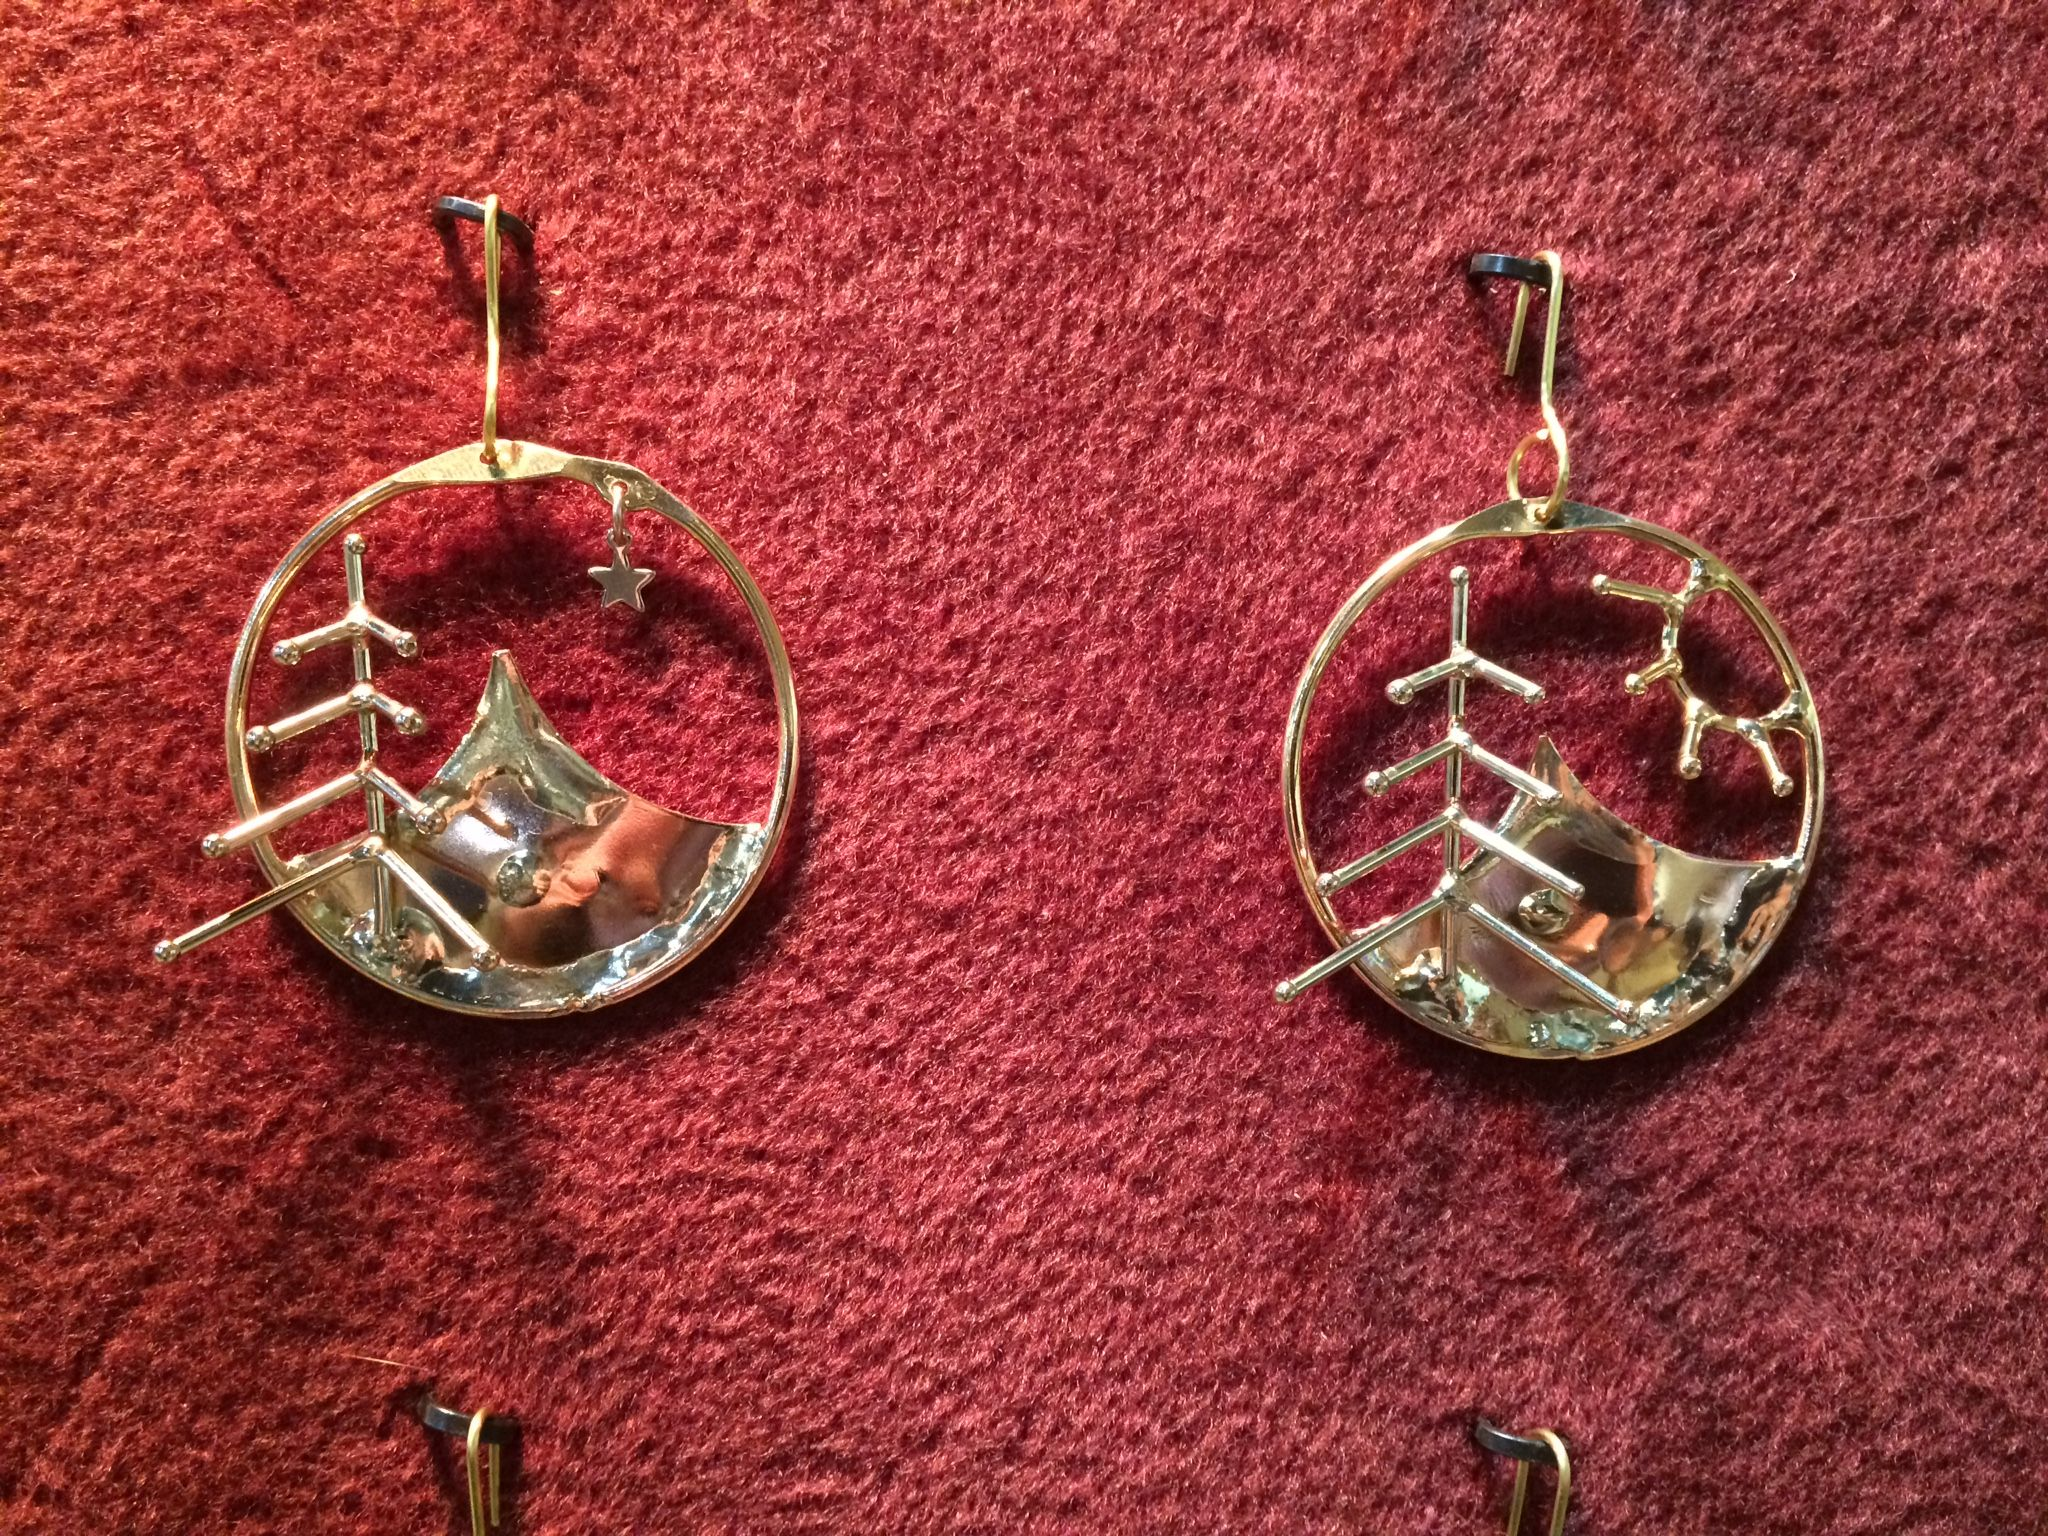 Oregon ornaments by Marti Spehar, Oregon Jewelry & Ornament Works